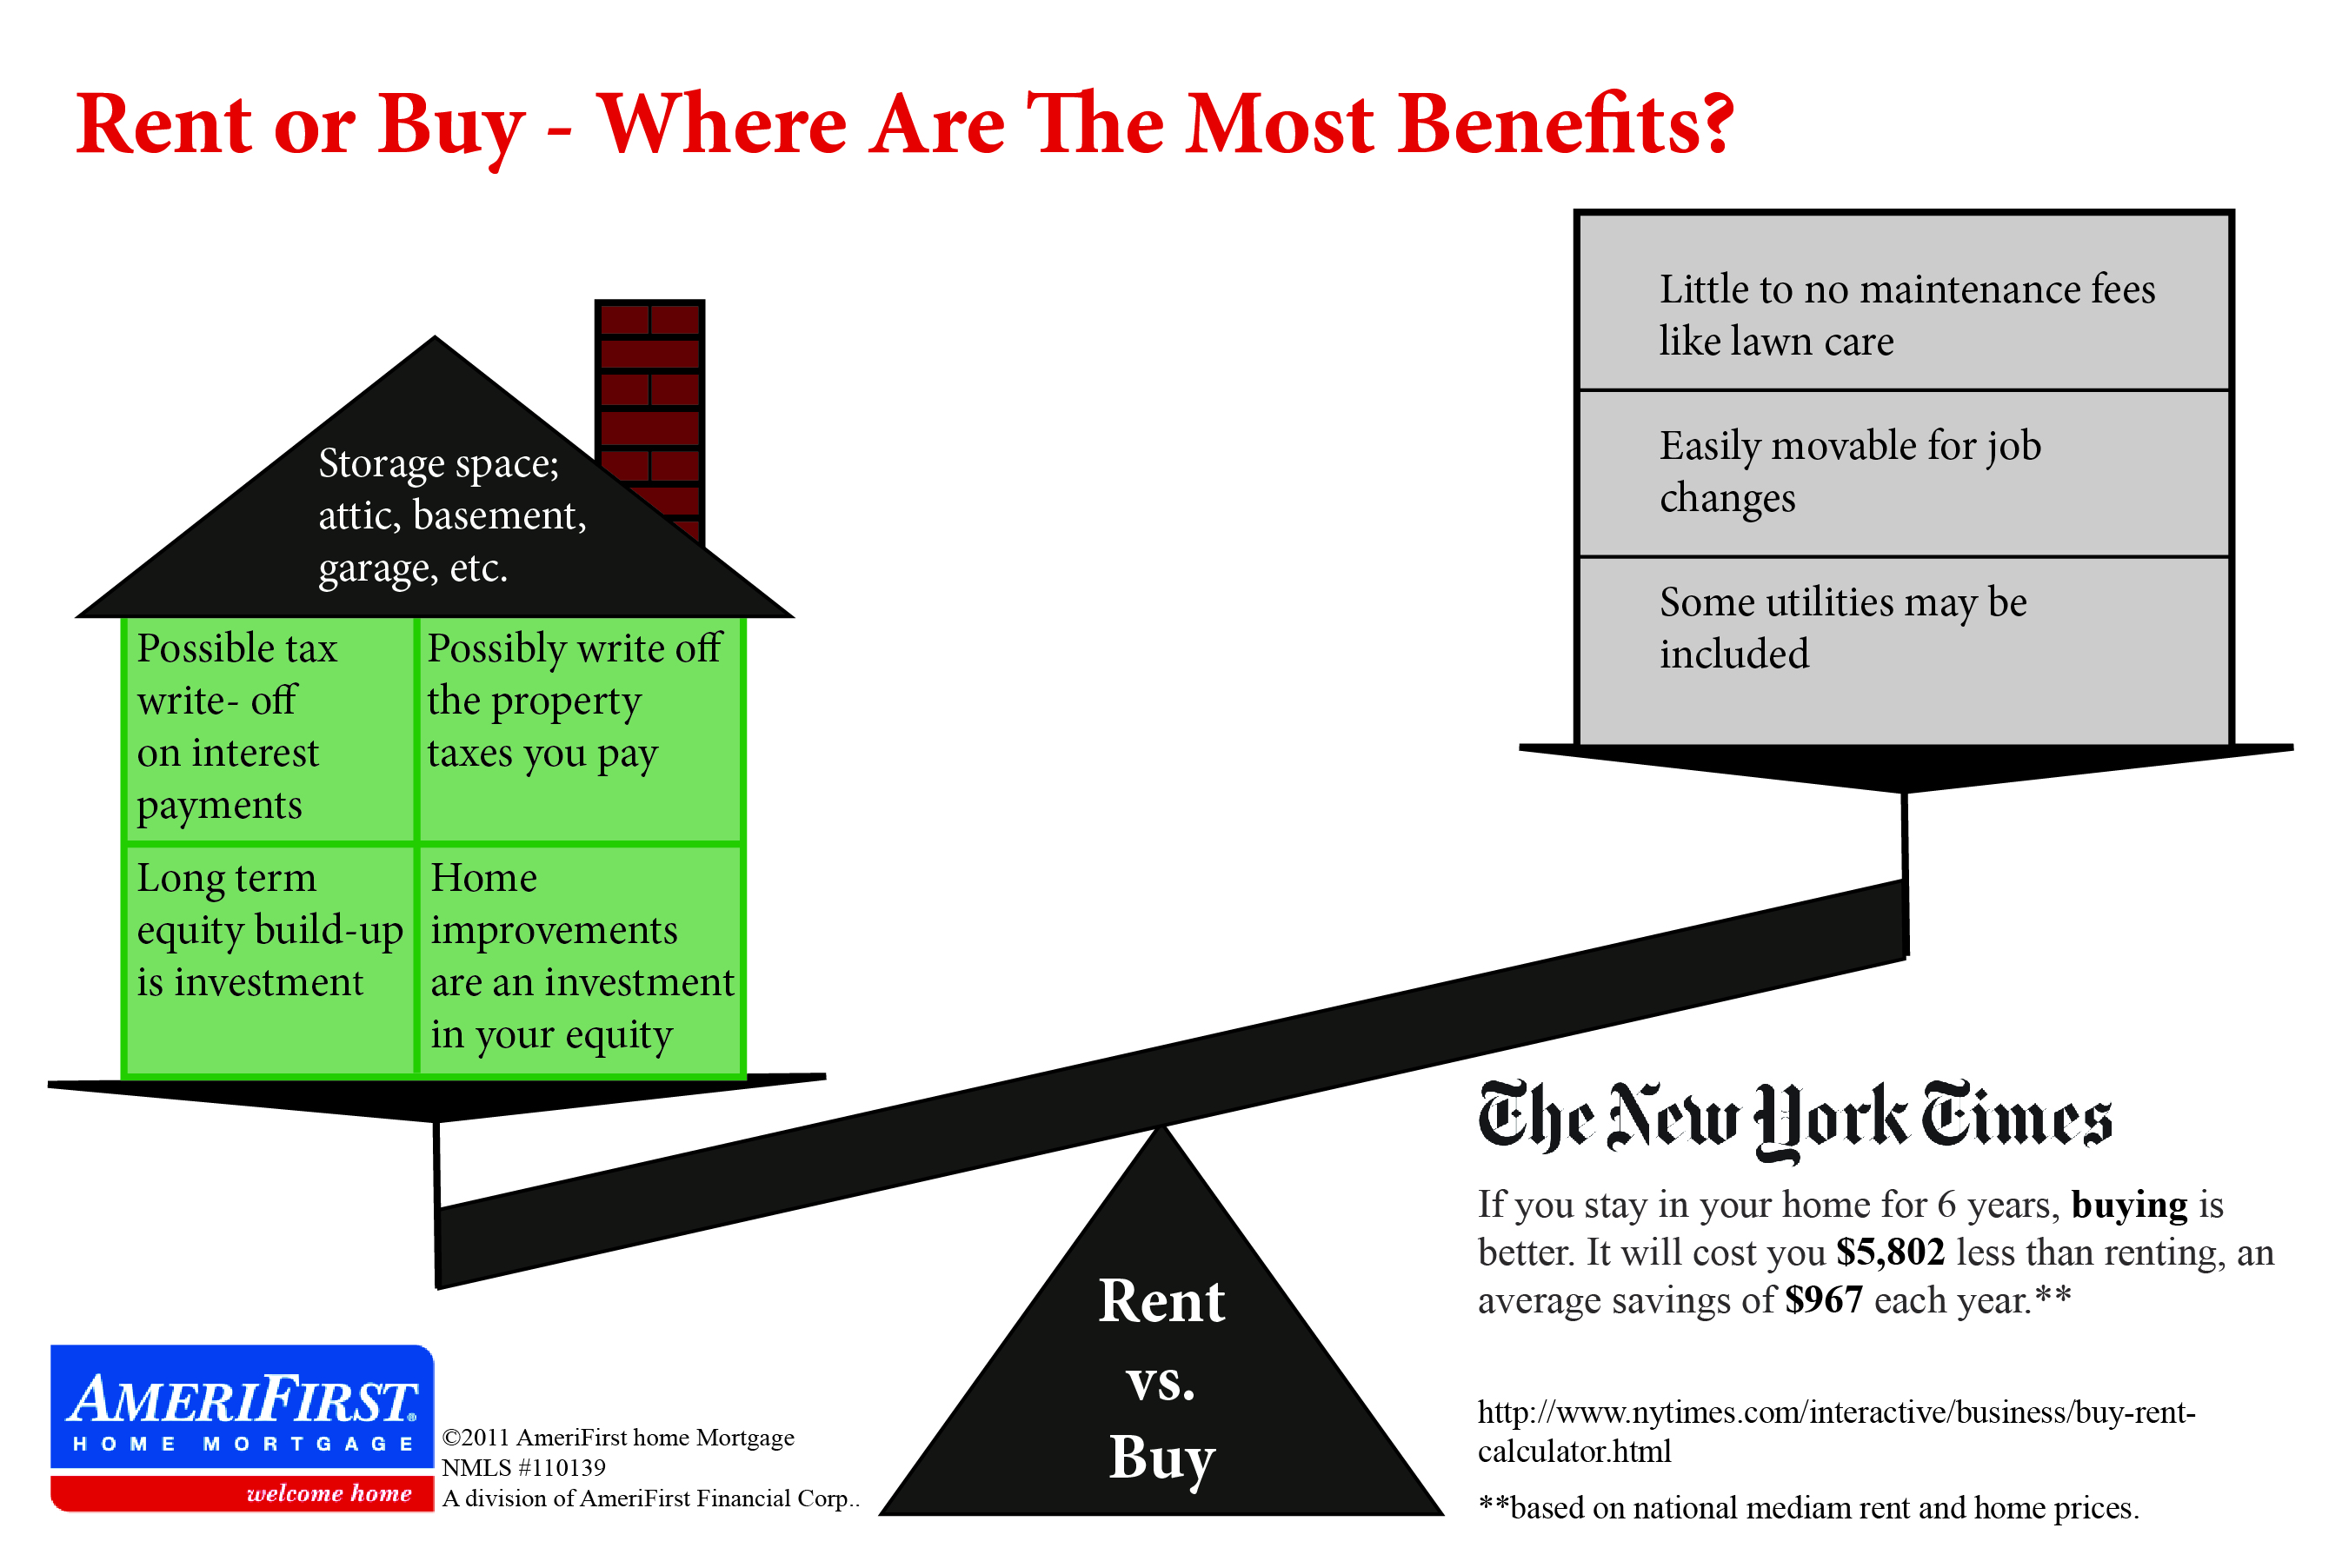 AmeriFirst infographic rent vs buy